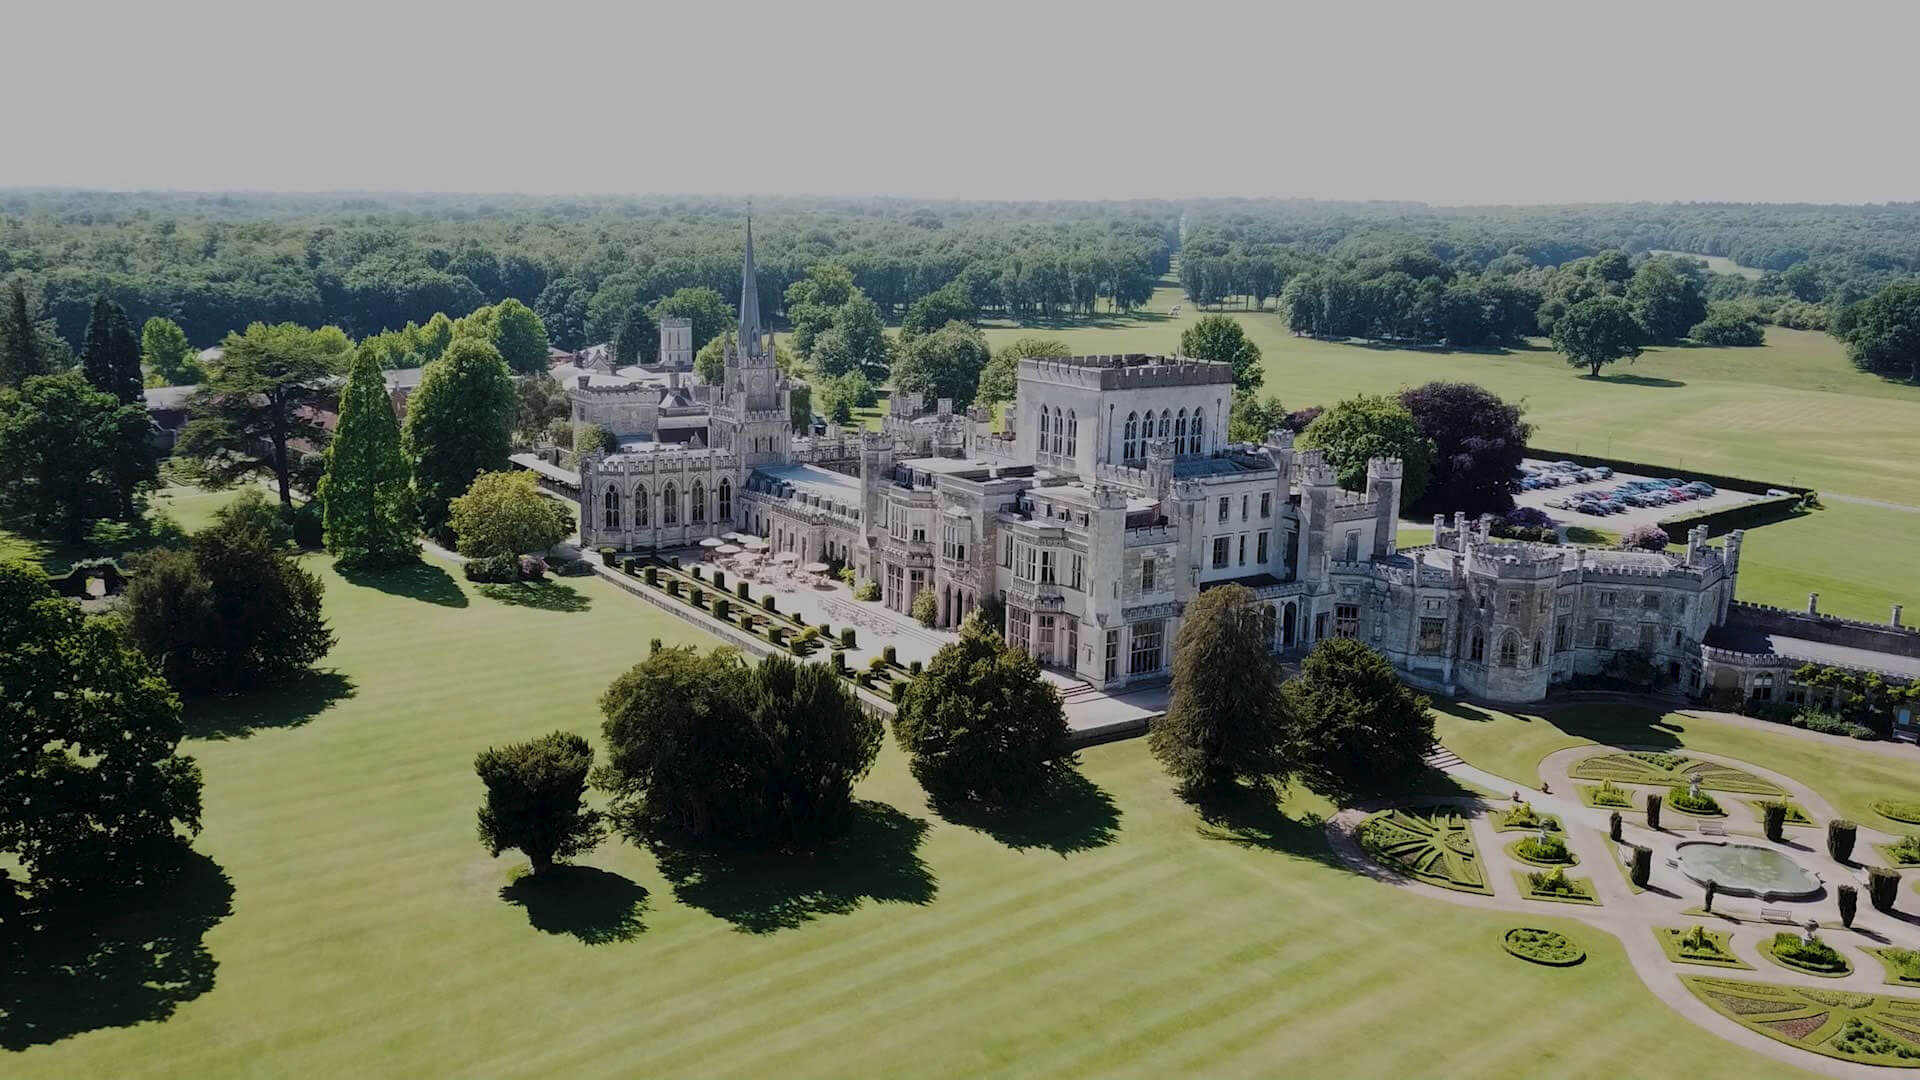 Ashridge aerial footage by drone